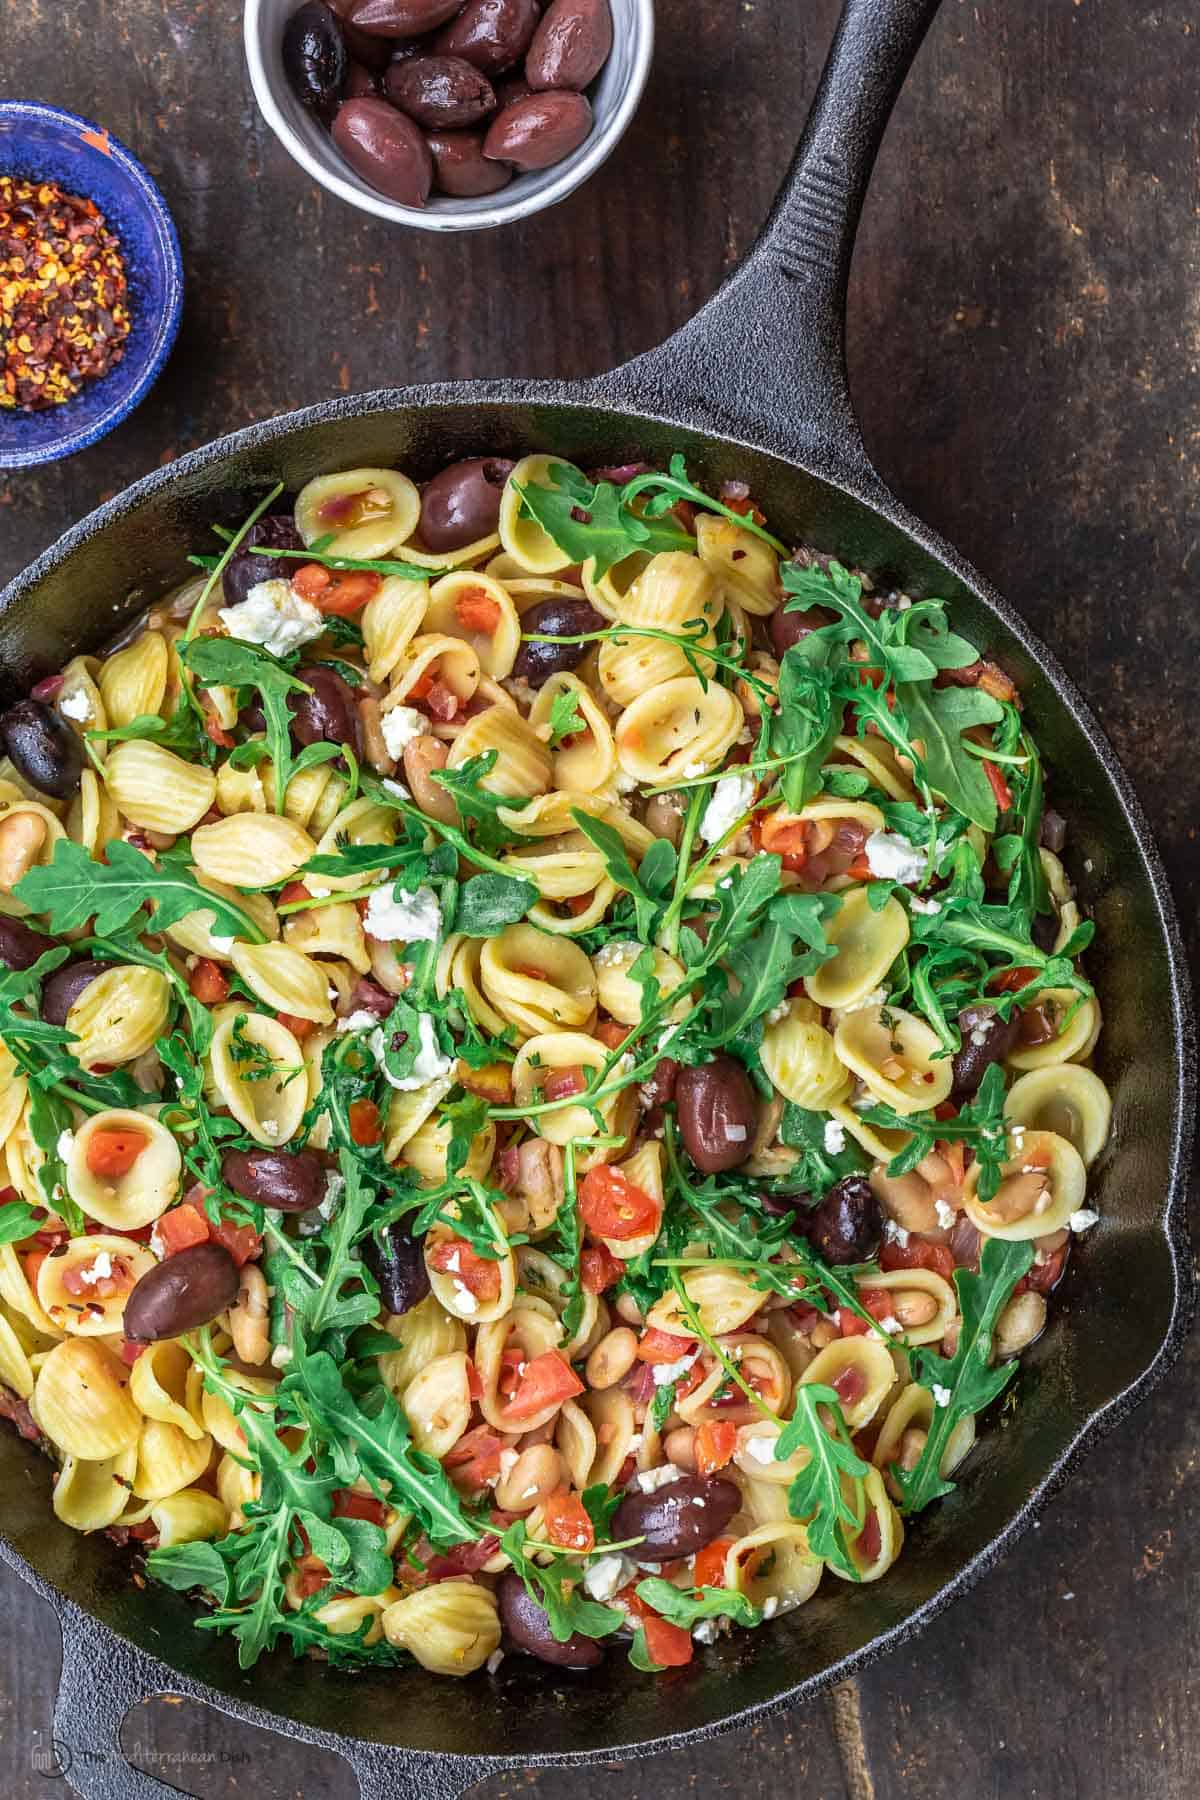 Orecchiette pasta in a skillet, topped with arugula. smaller bowls of red pepper flakes and olives to the side